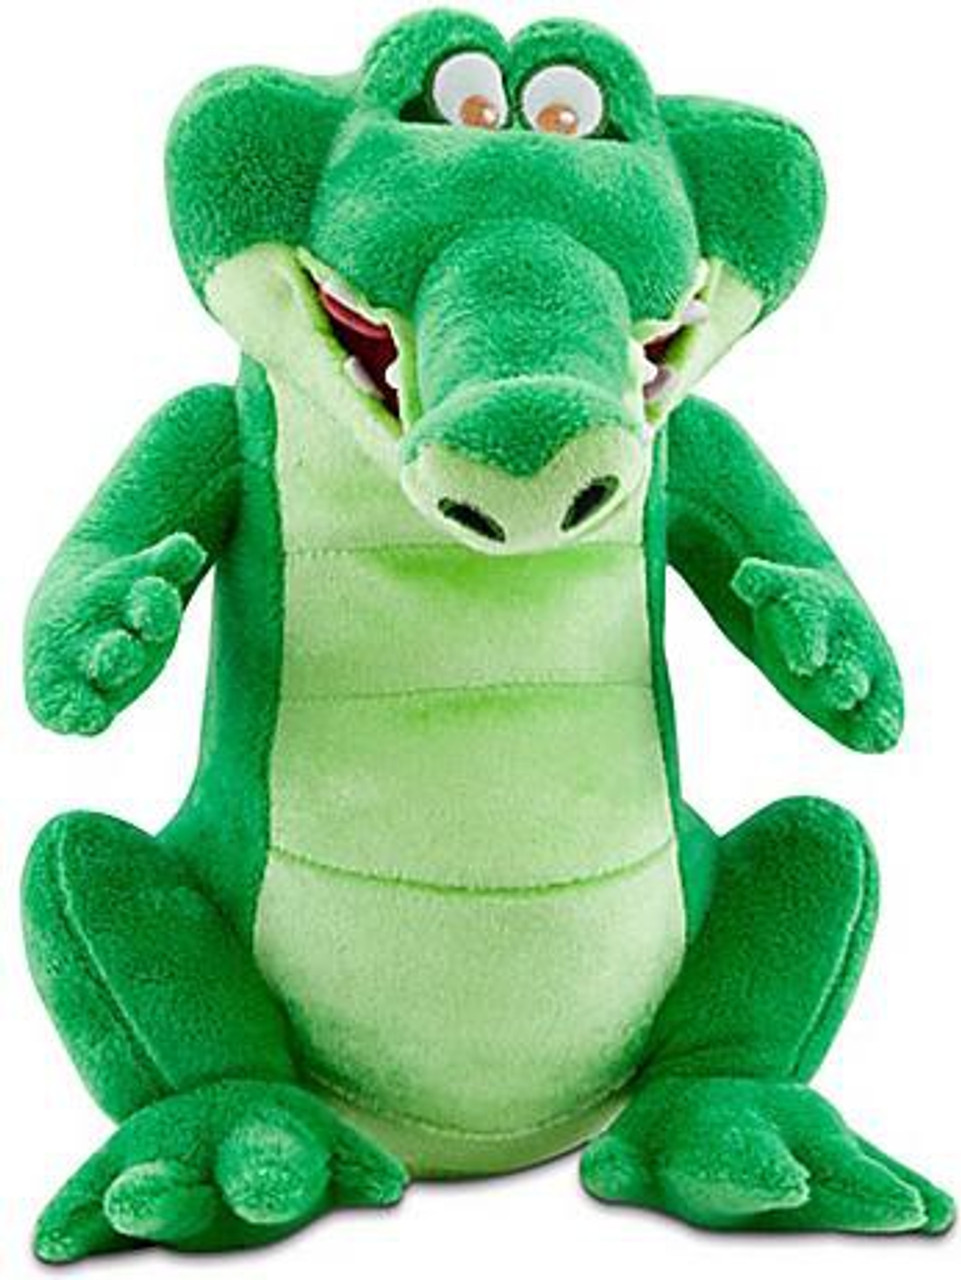 Disney Peter Pan Tick-Tock the Crocodile Exclusive 12-Inch Plush